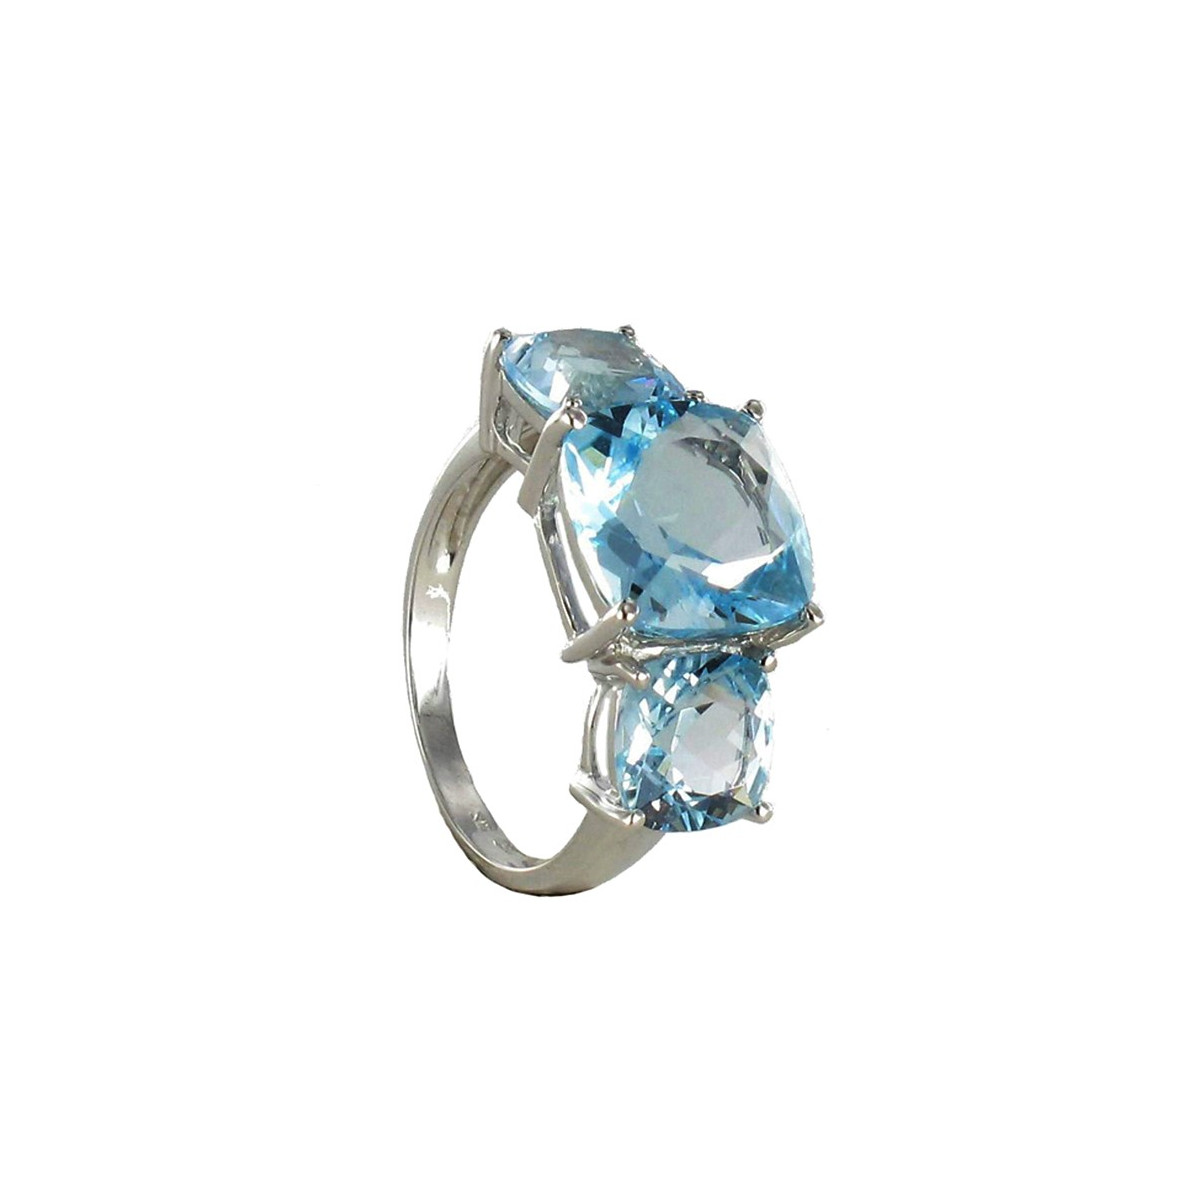 GOLD RING WITH 3 BLUE TOPAZ